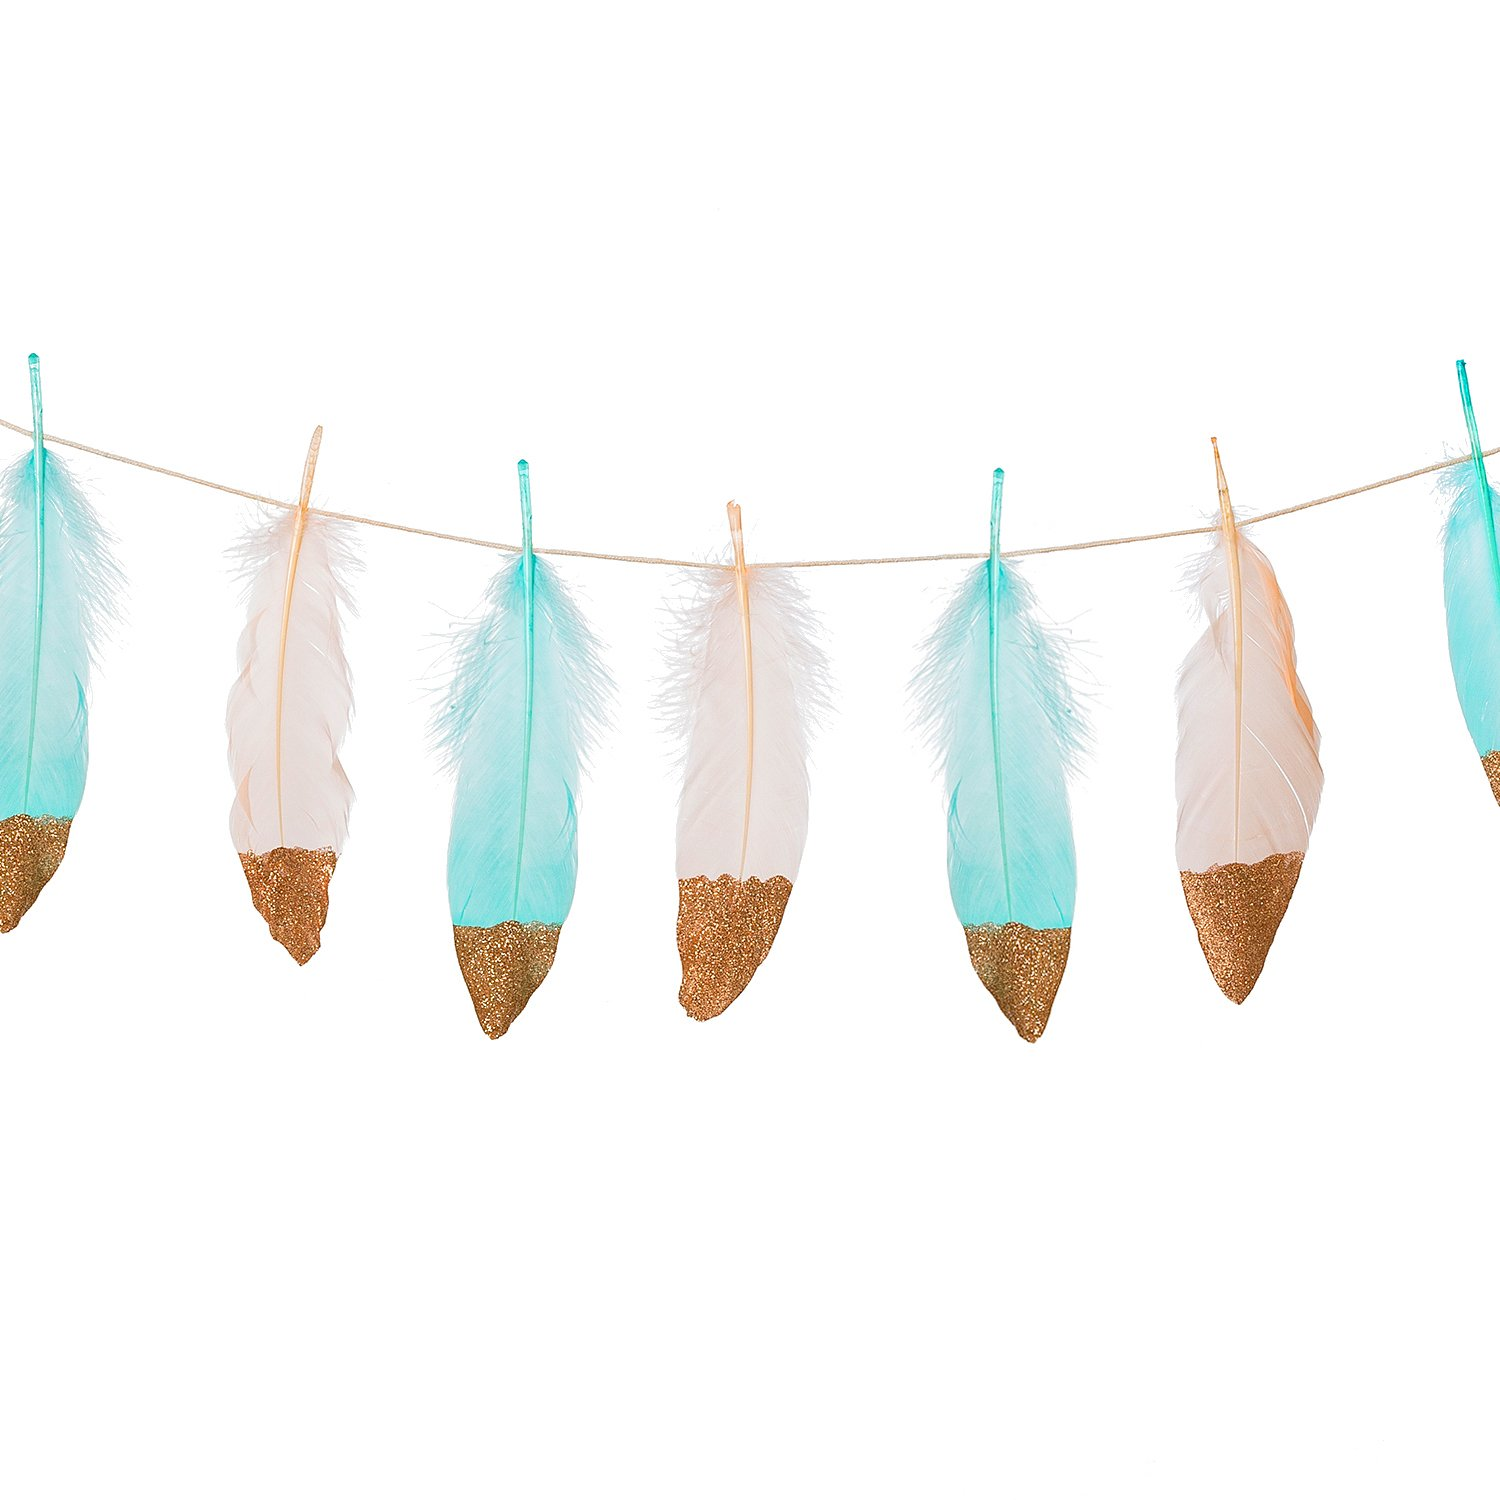 Ling's Moment 10FT Feather Garland Rose Gold Glitter Dipped Soft Peach and Blue Feather Banner for Boho Wedding/Party/Baby Shower/Nursery Decor, Teepee Decorations,